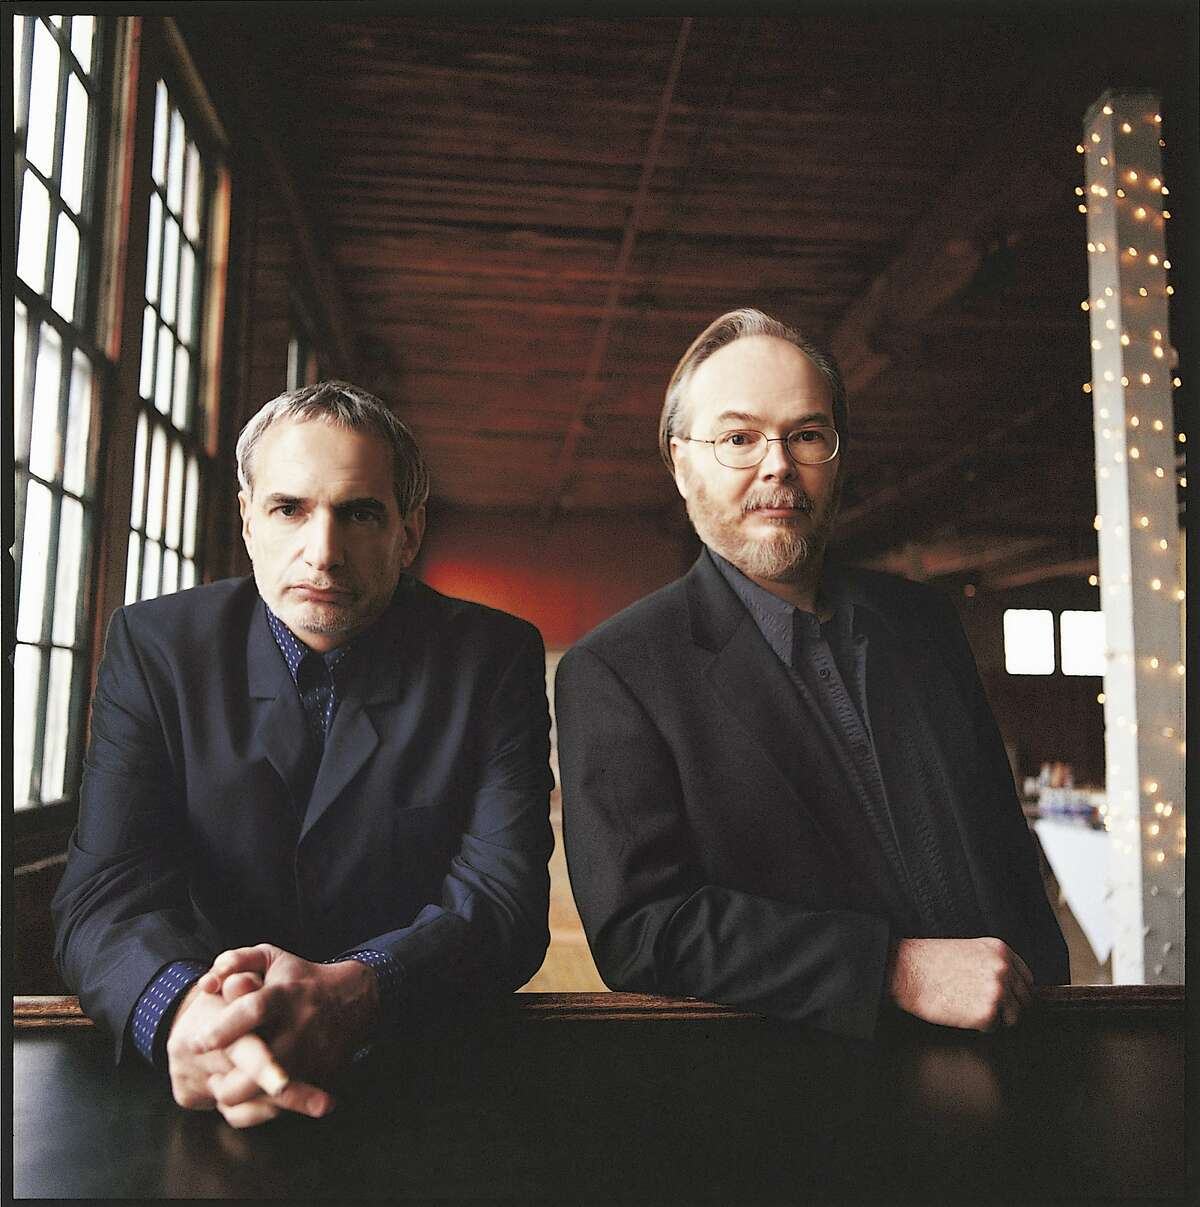 Steely Dan at Saratoga Performing Arts Center in Saratoga Springs.When: July 10, 2016.